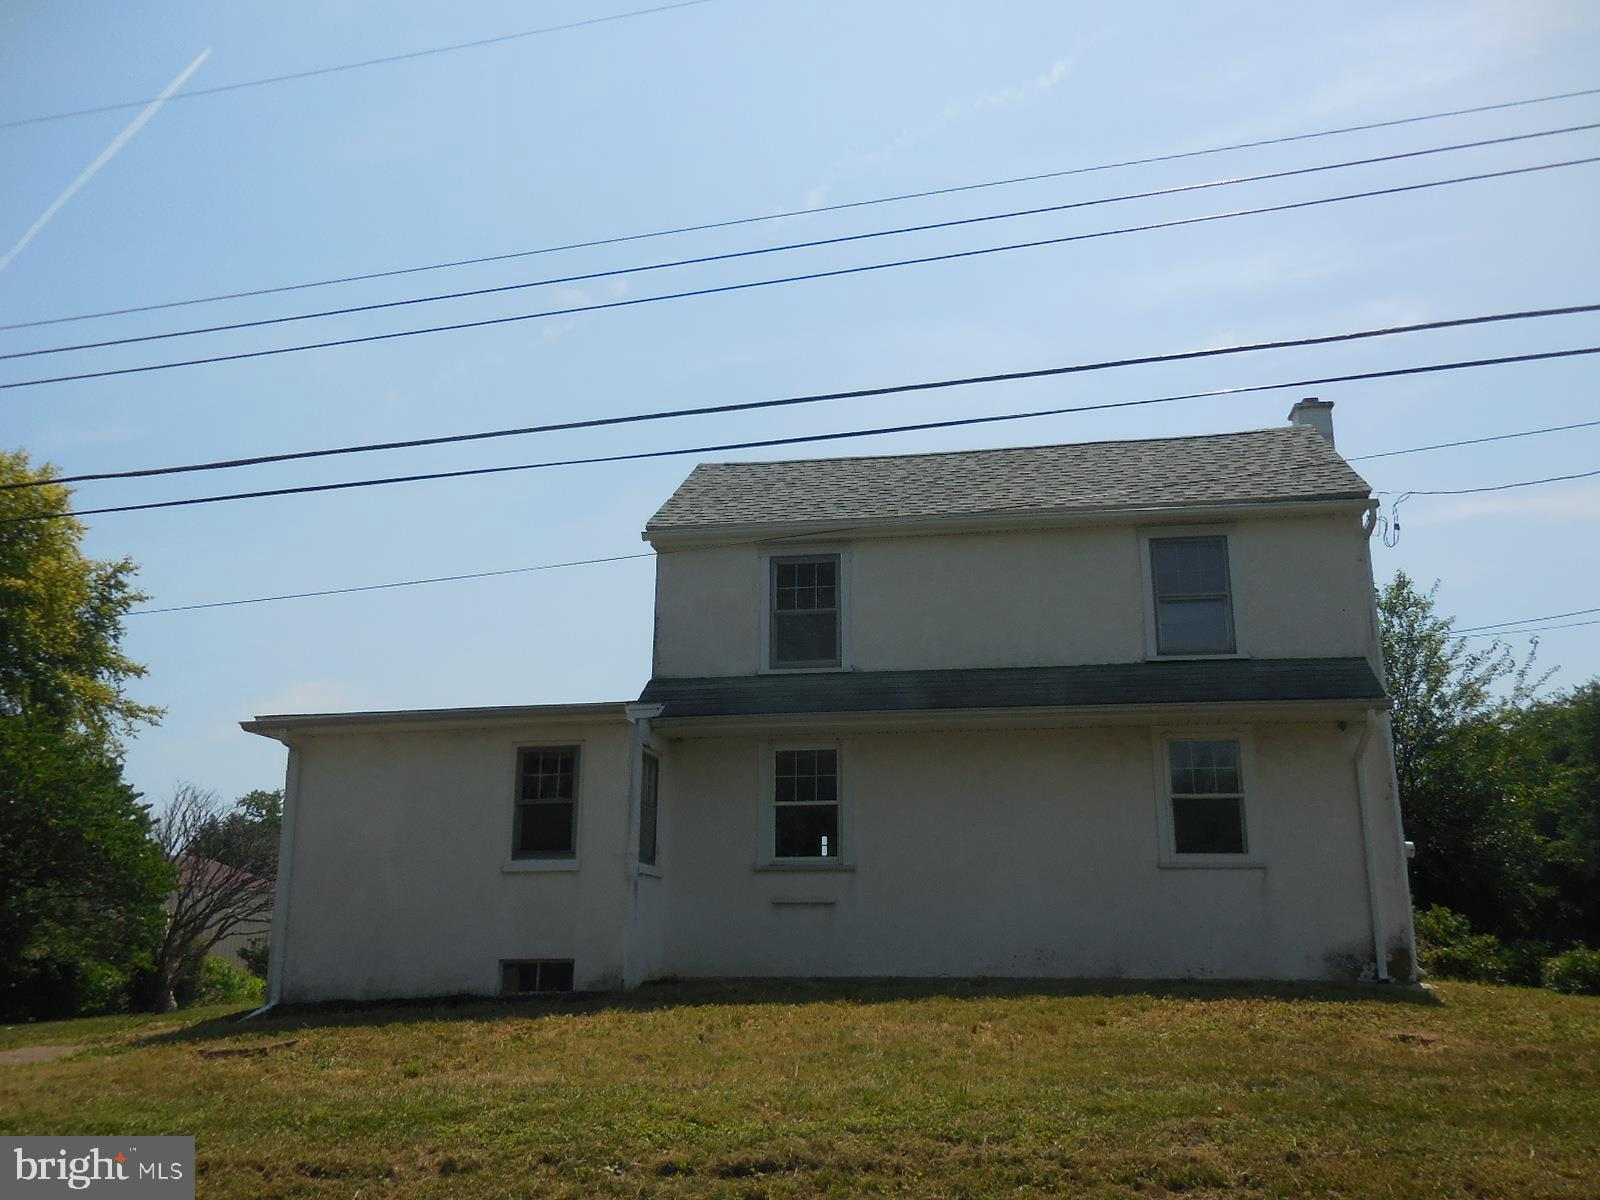 Rural setting in Lower Oxford Township surrounded by farmland. This 2-story Farmhouse, deeded 1865 and built in the 1700's, has old-world charm. Open porch, living room, dining room, kitchen, bedroom and full bath. Upstairs are 2 bedrooms. Laundry/mud room, full basement, and oil heat.